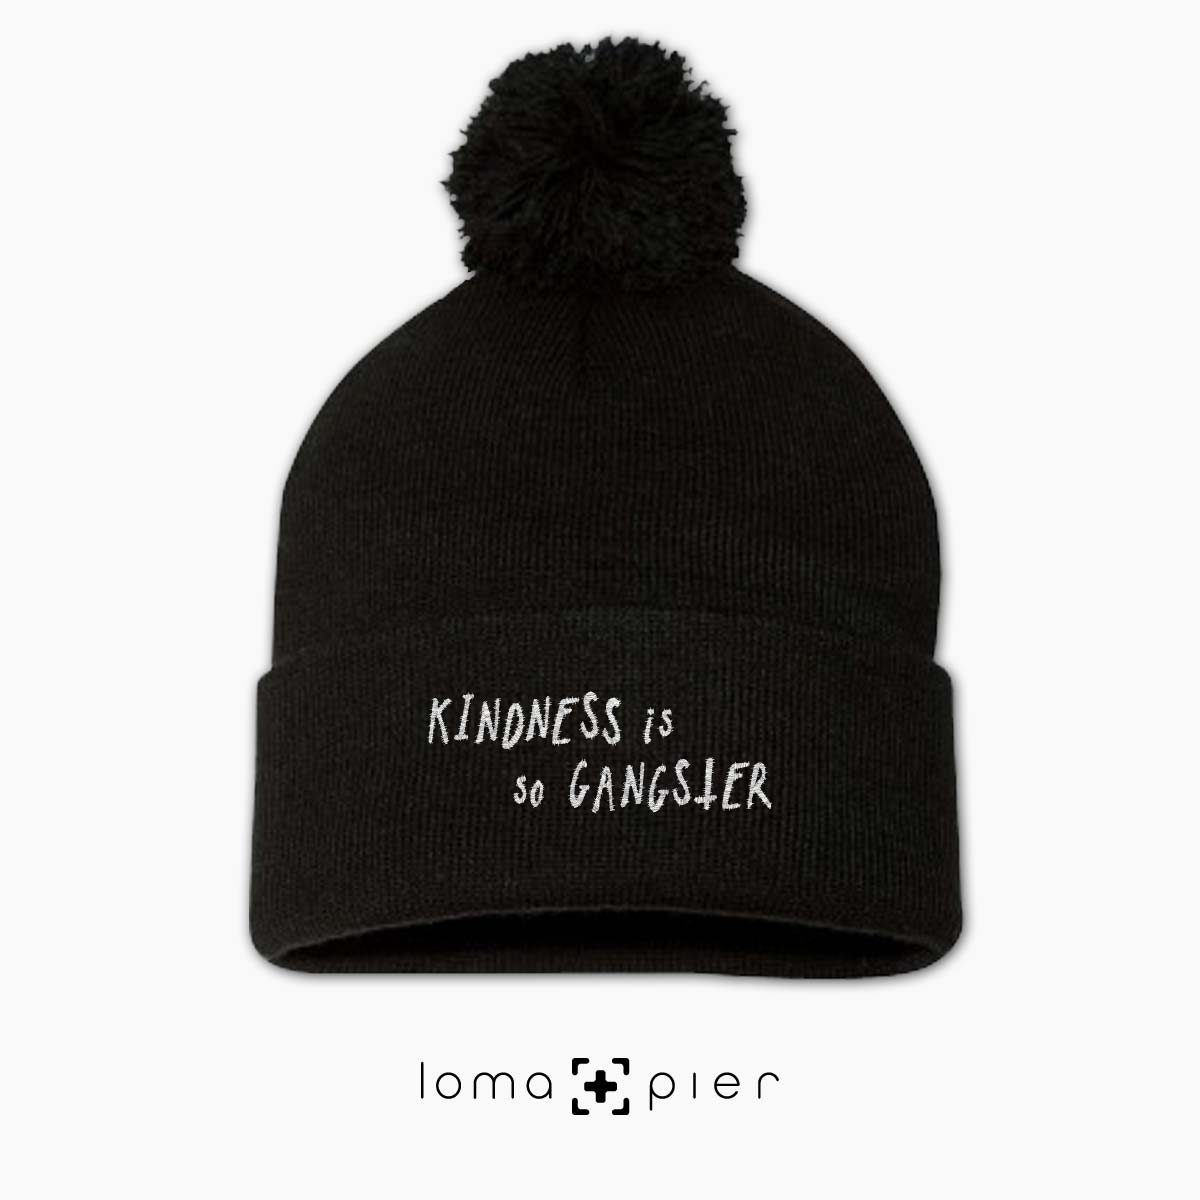 KINDNESS IS SO GANGSTER typography embroidered on a black pom pom beanie with white thread by loma+pier hat store